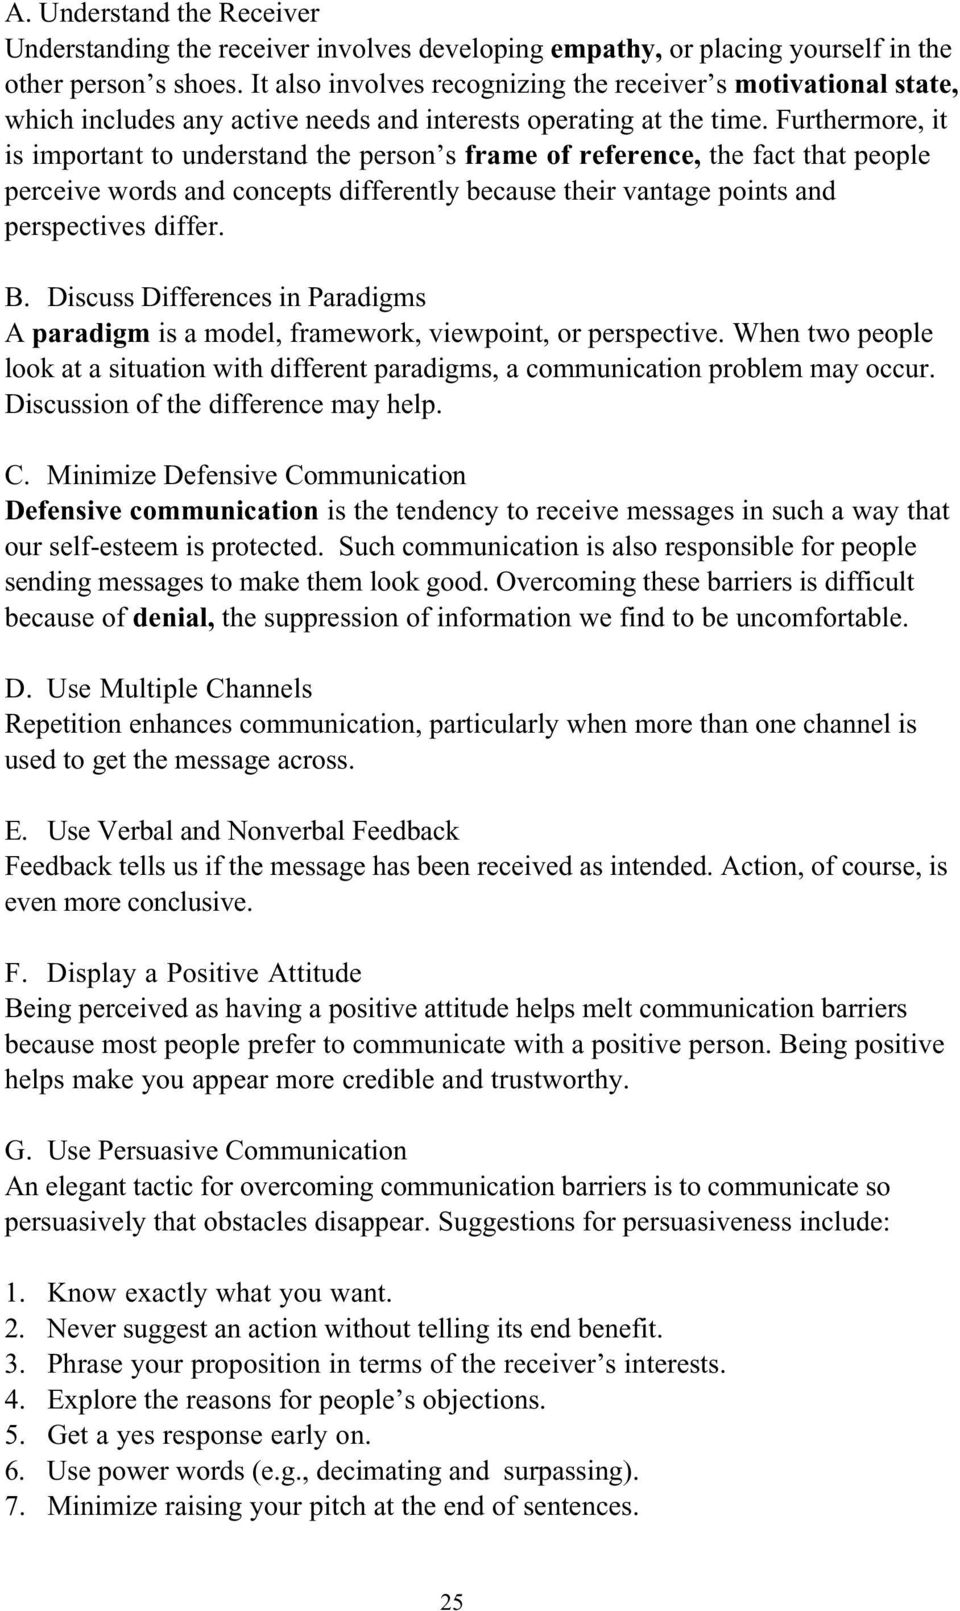 CHAPTER 3: INTERPERSONAL COMMUNICATIONS - PDF